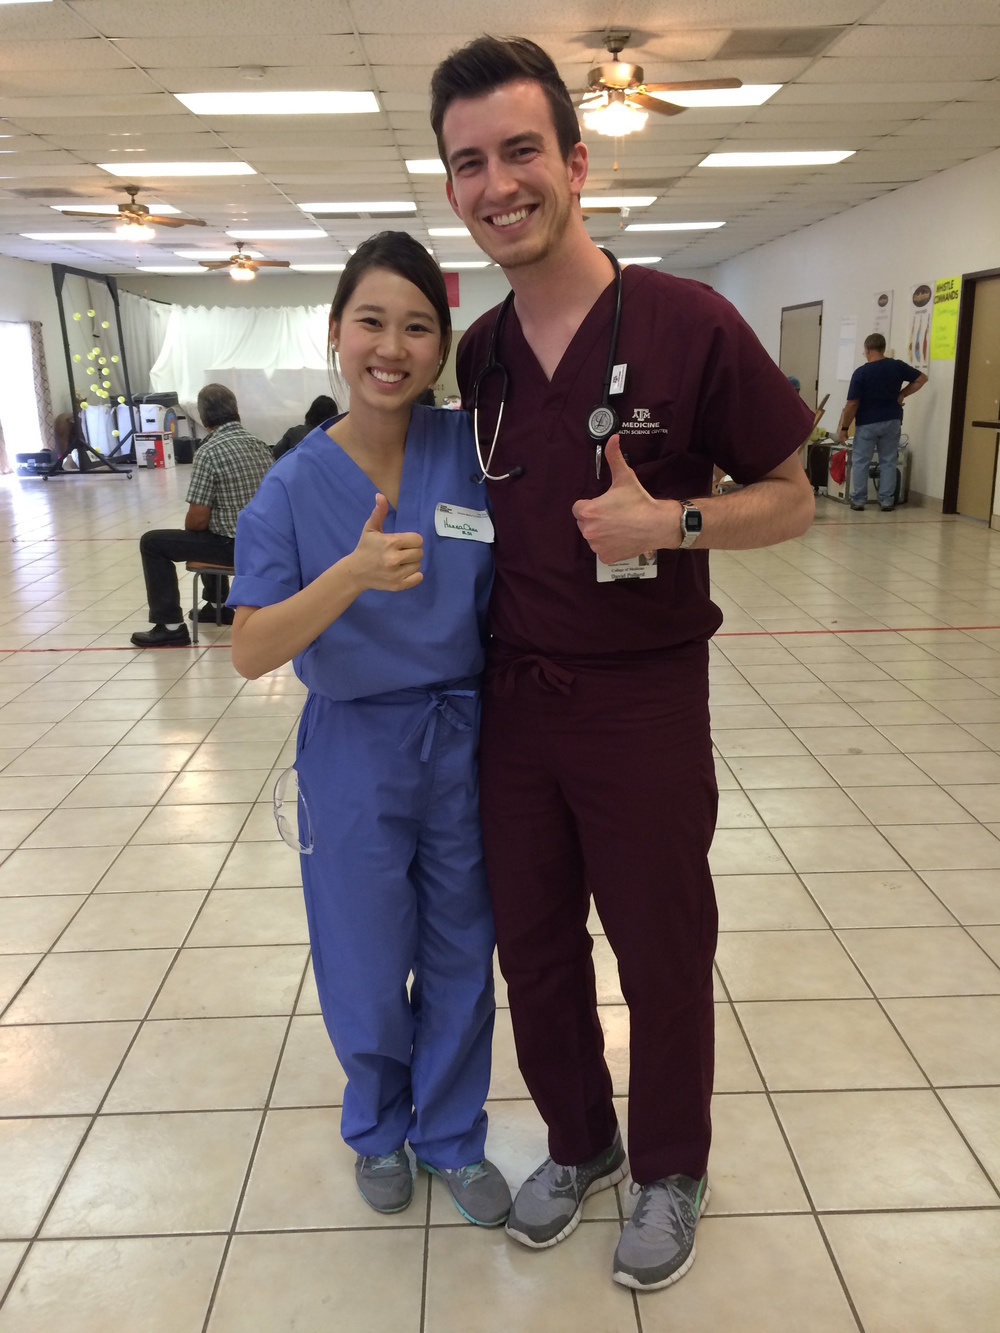 Hanna Chen (M1) and David Pollard (M2) show their Aggie pride in Del Rio, Texas.